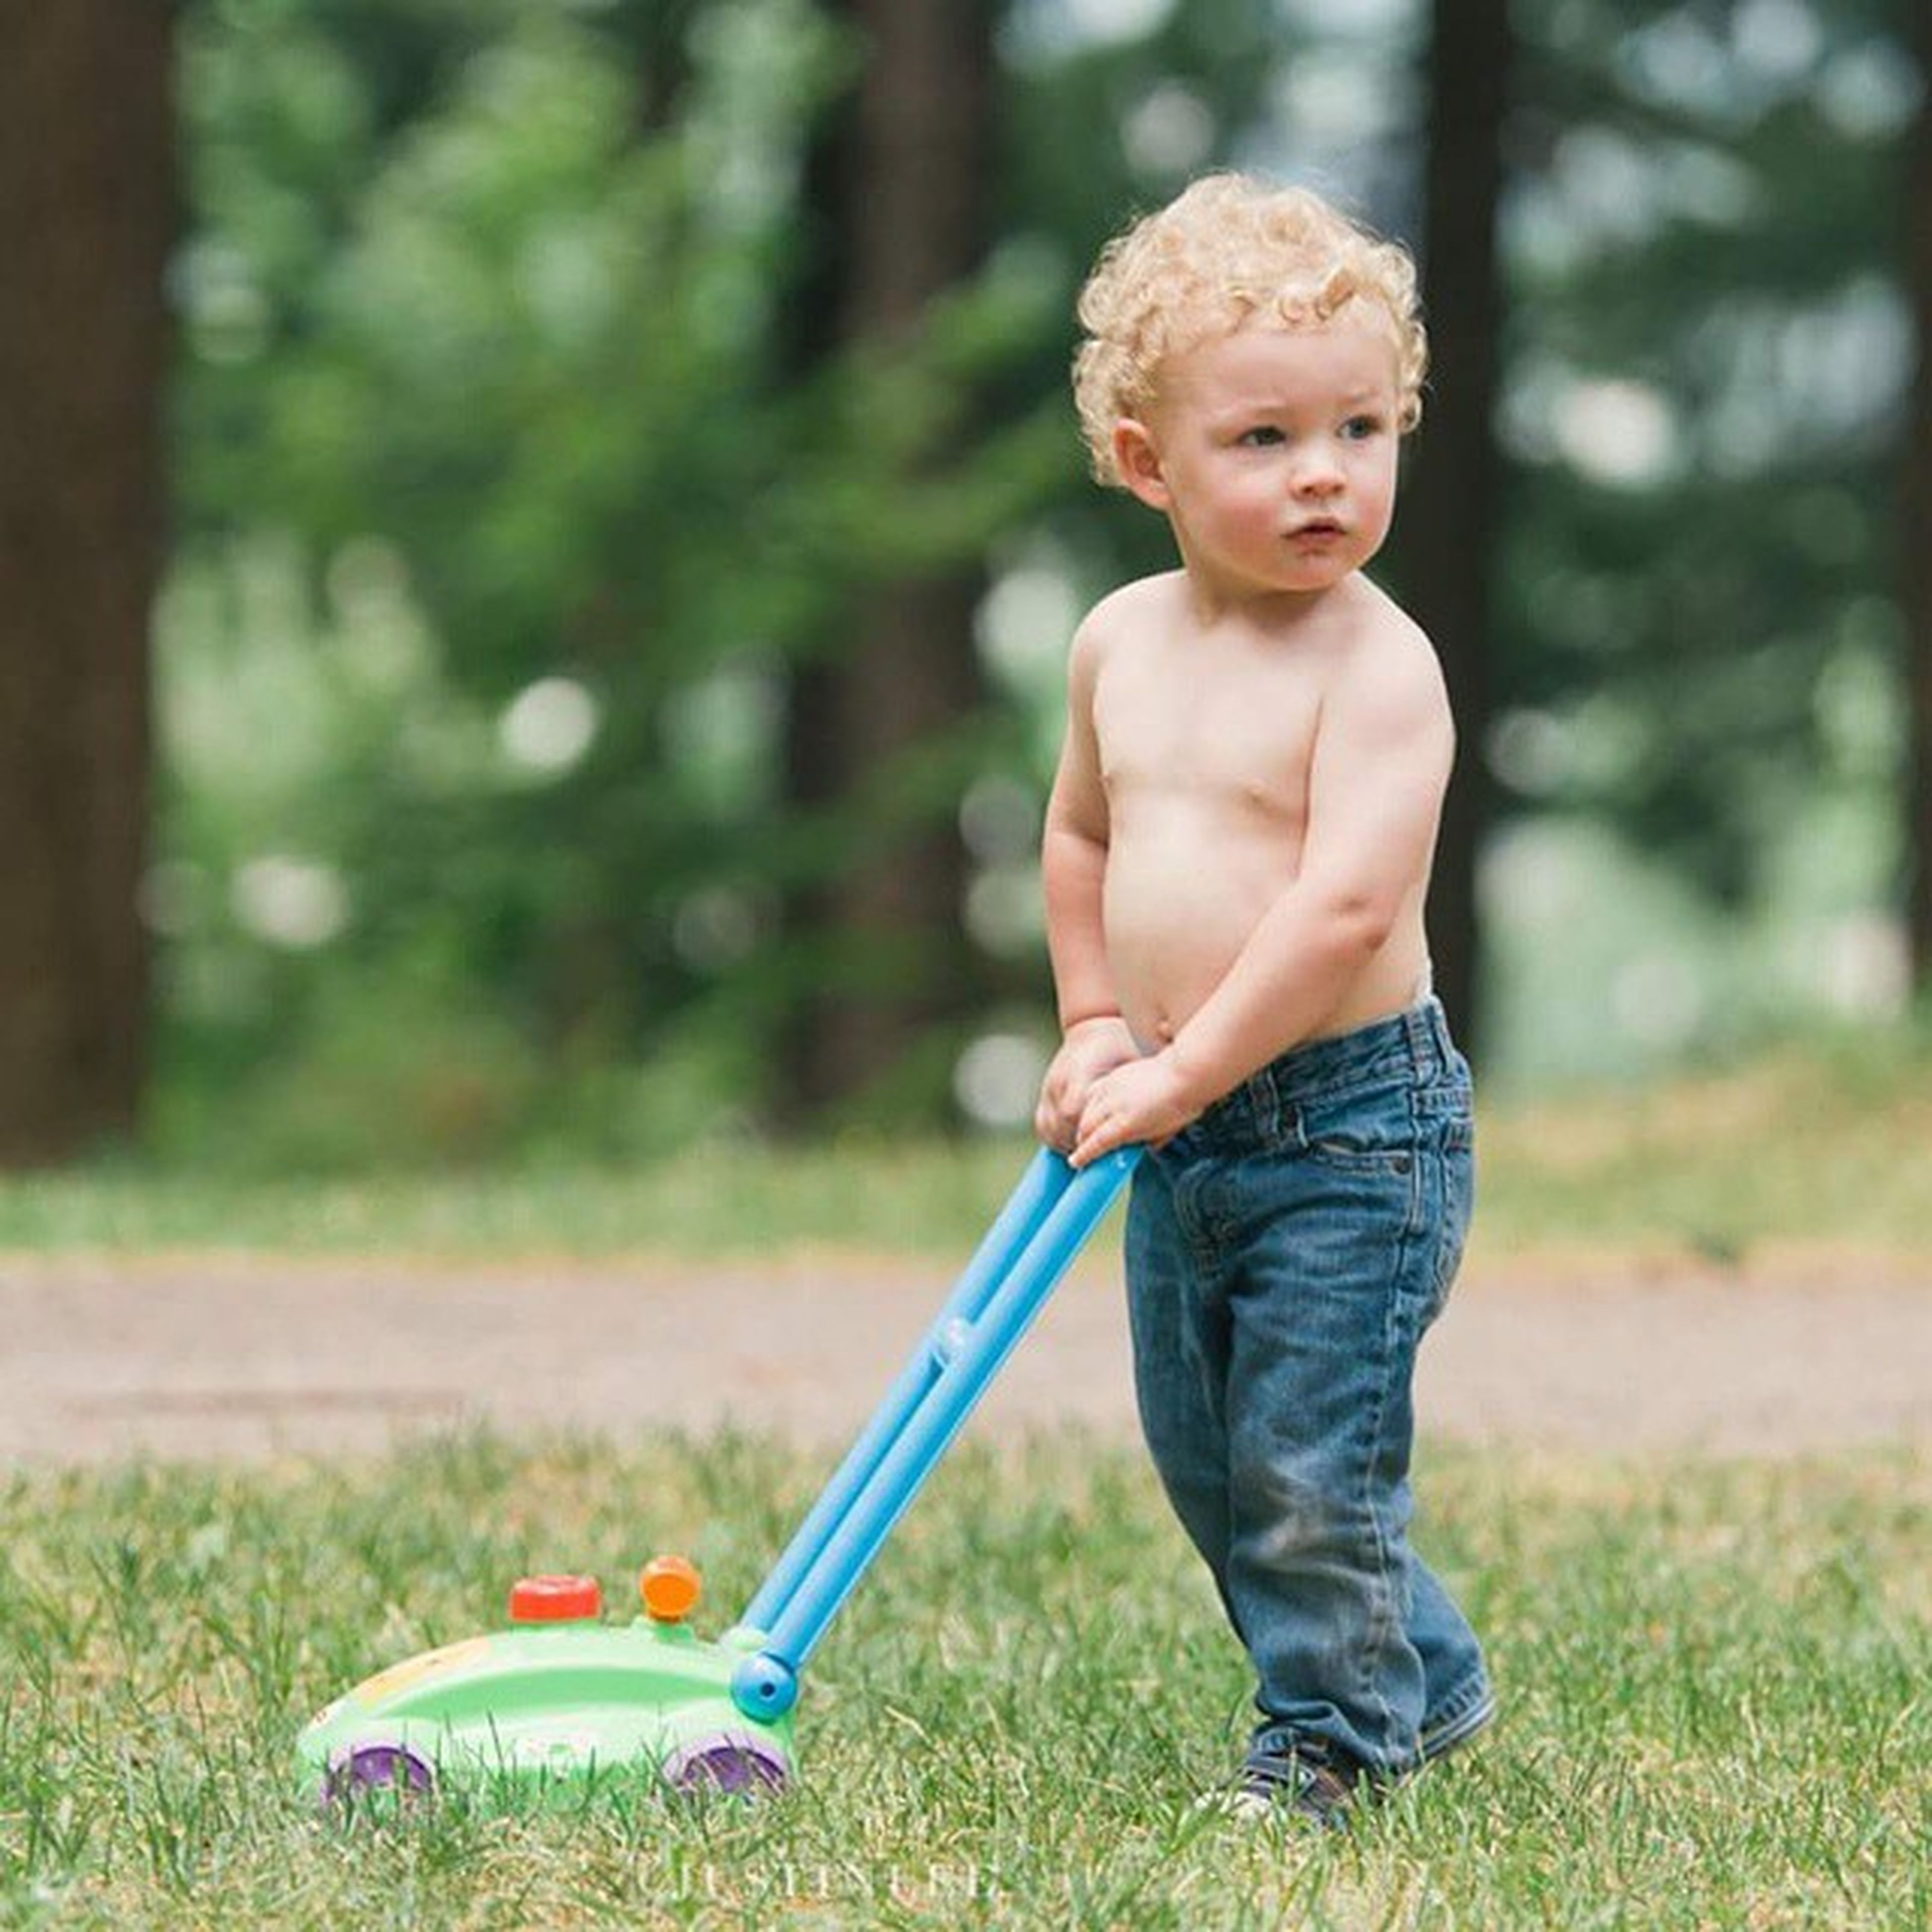 person, childhood, elementary age, casual clothing, full length, focus on foreground, cute, innocence, boys, front view, happiness, lifestyles, smiling, looking at camera, portrait, leisure activity, girls, grass